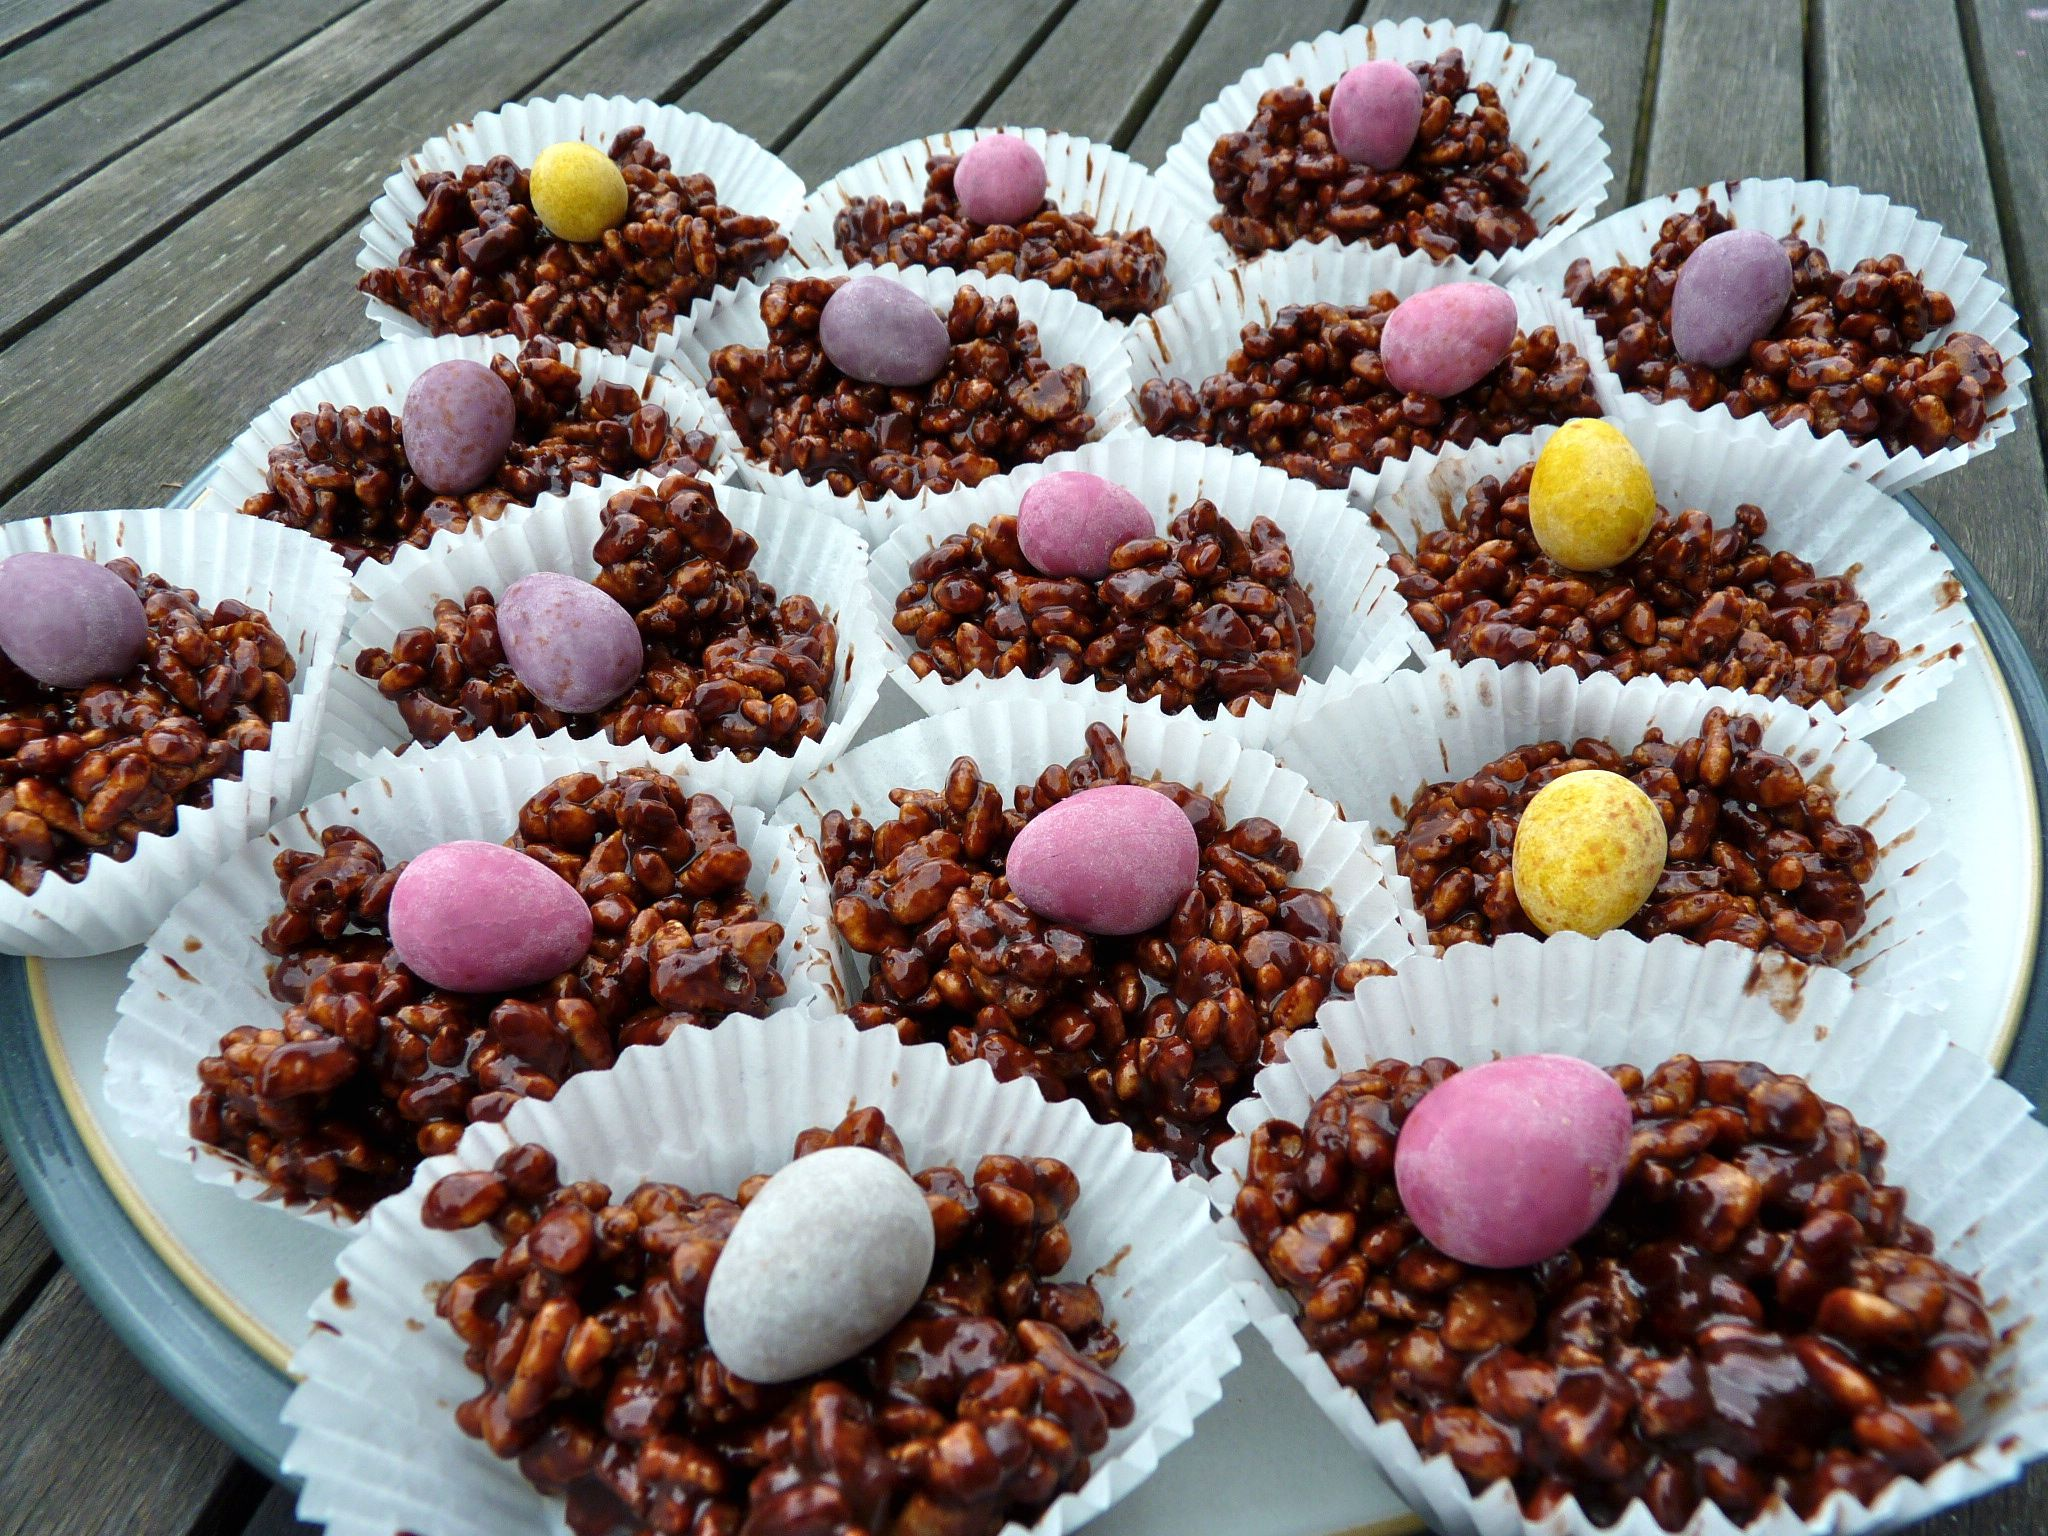 http://theordinarycook.co.uk/wp-content/uploads/2010/03/crispie-cakes.jpg